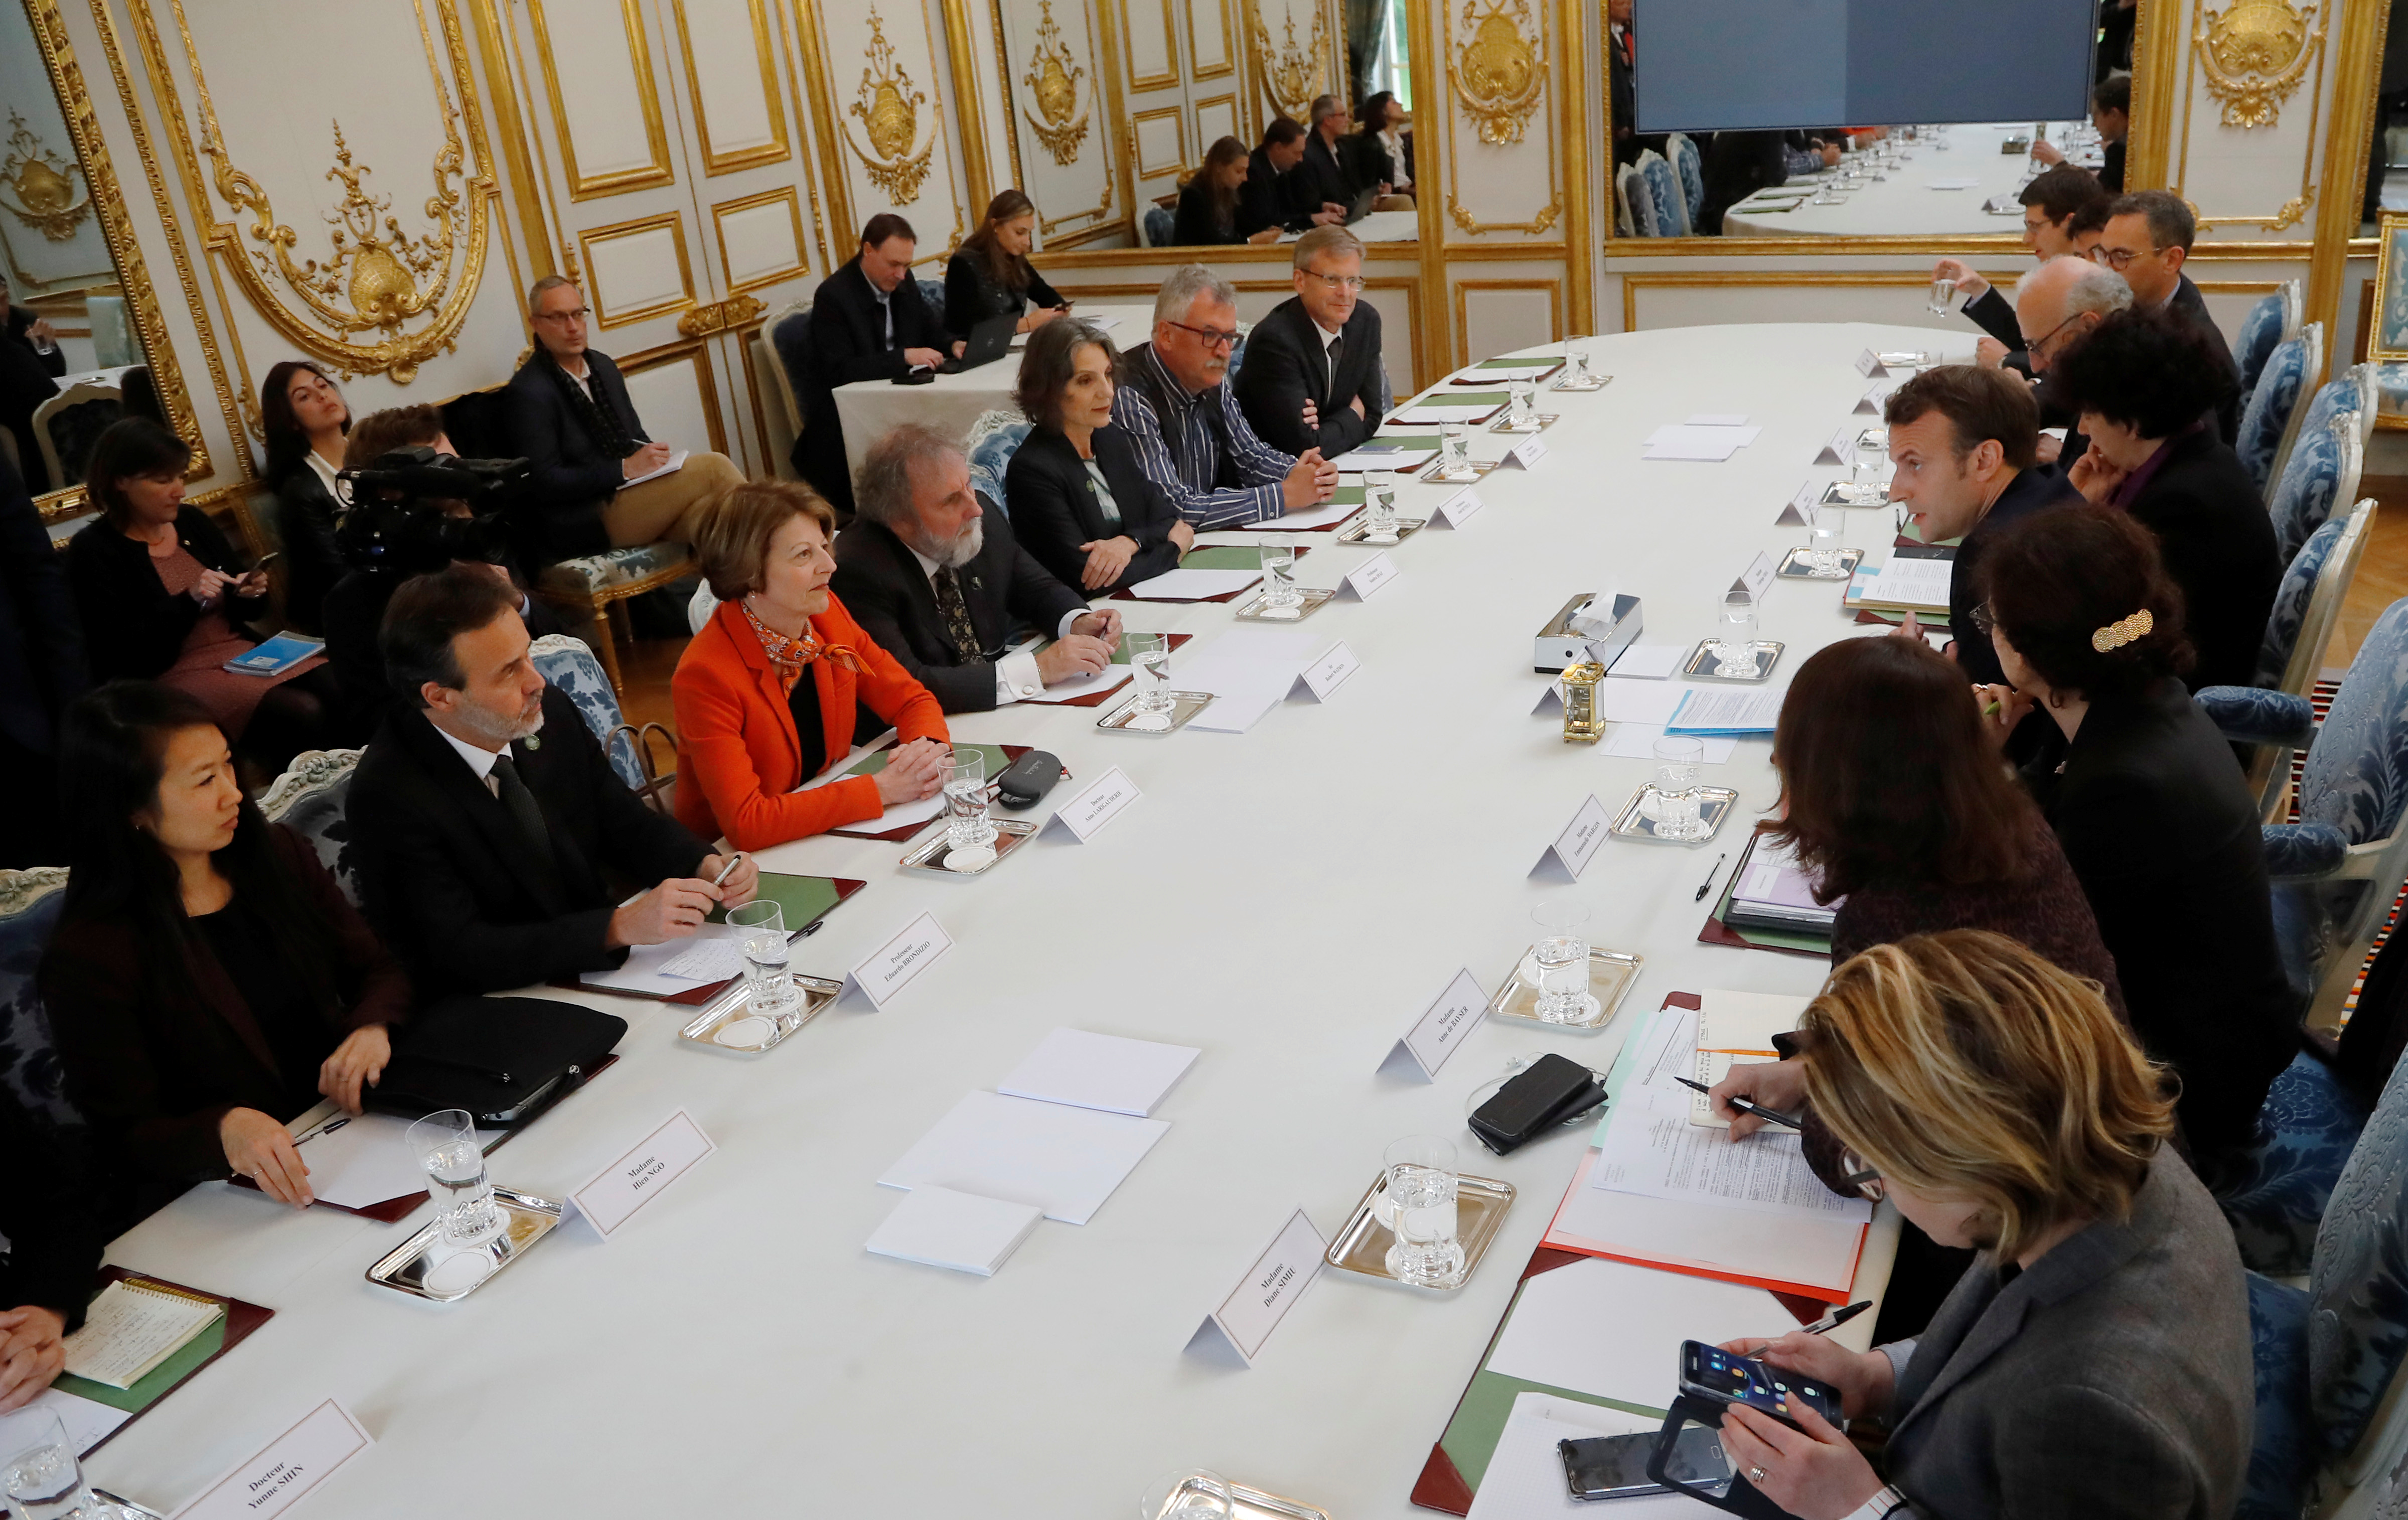 French President Macron meets scientists from IPBES